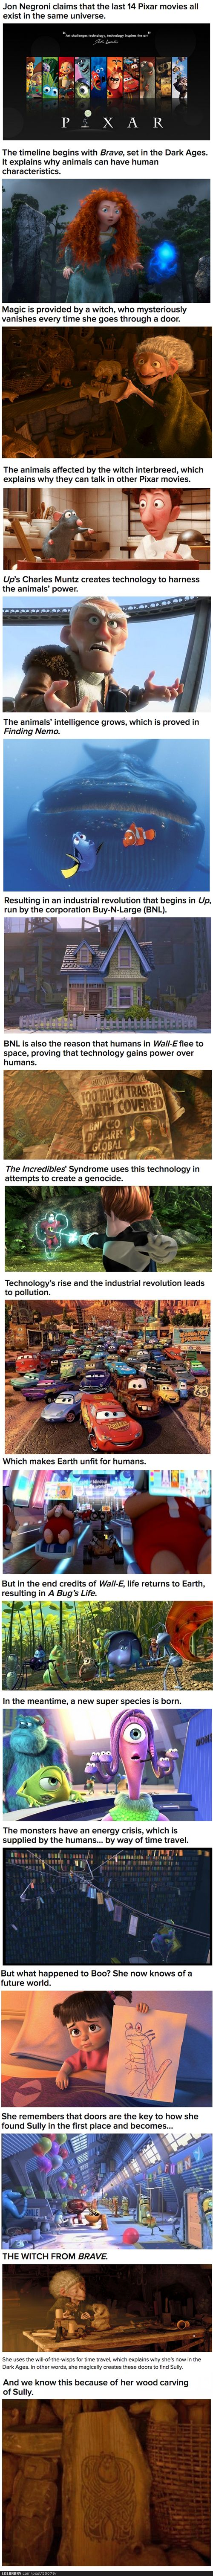 The Pixar Theory. So cool.